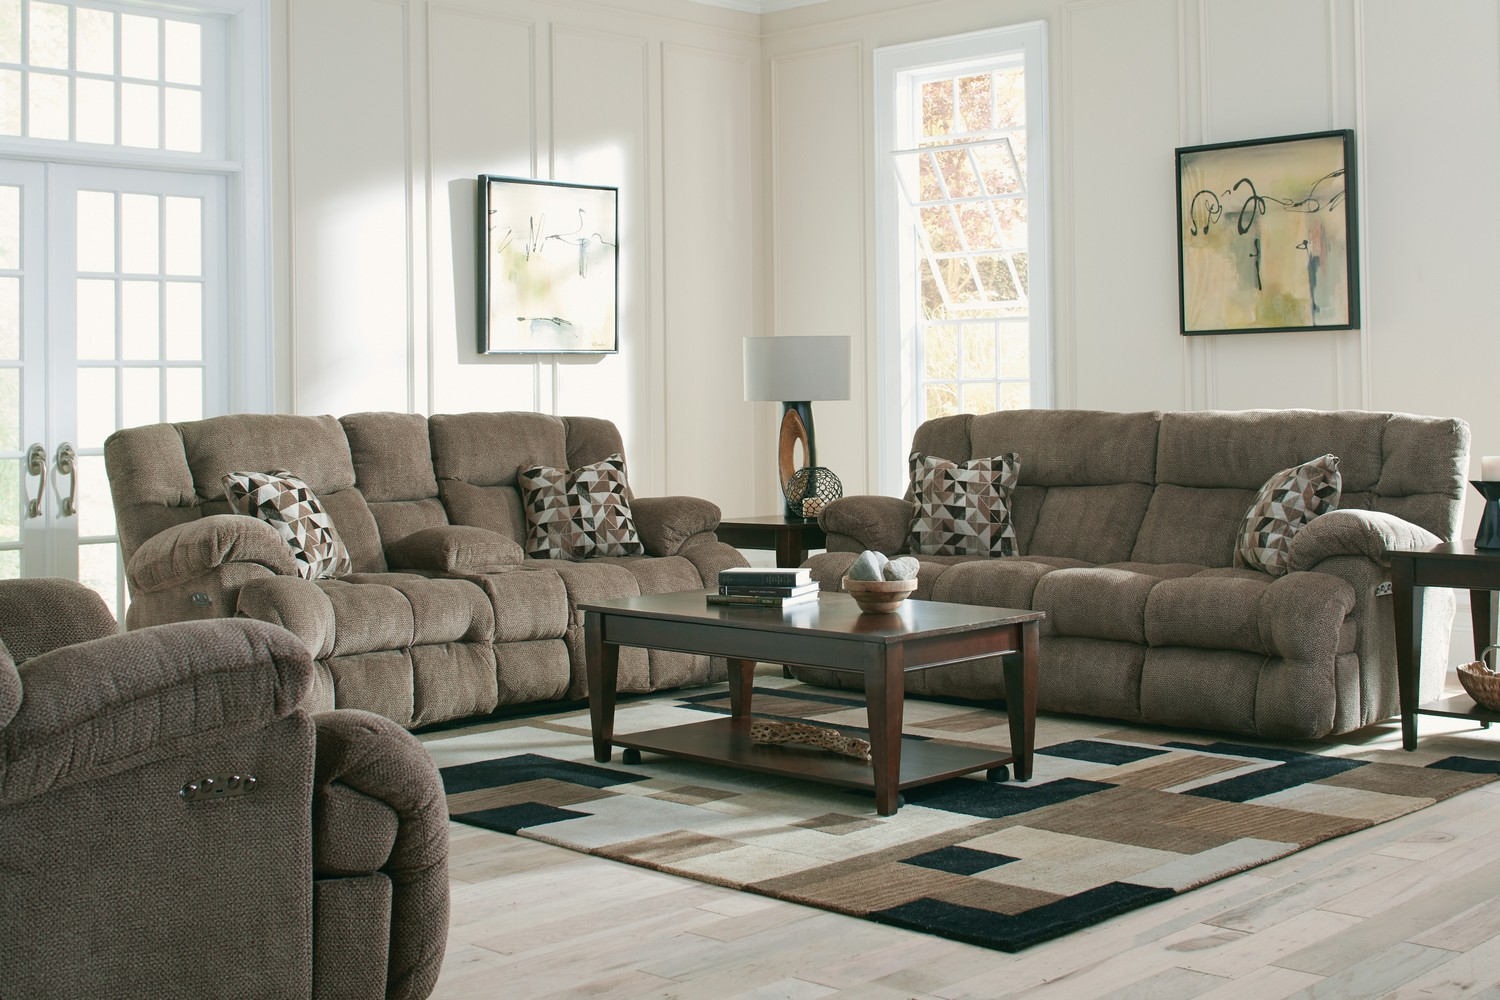 CatNapper Brice Power Reclining Sofa Set - Chateau